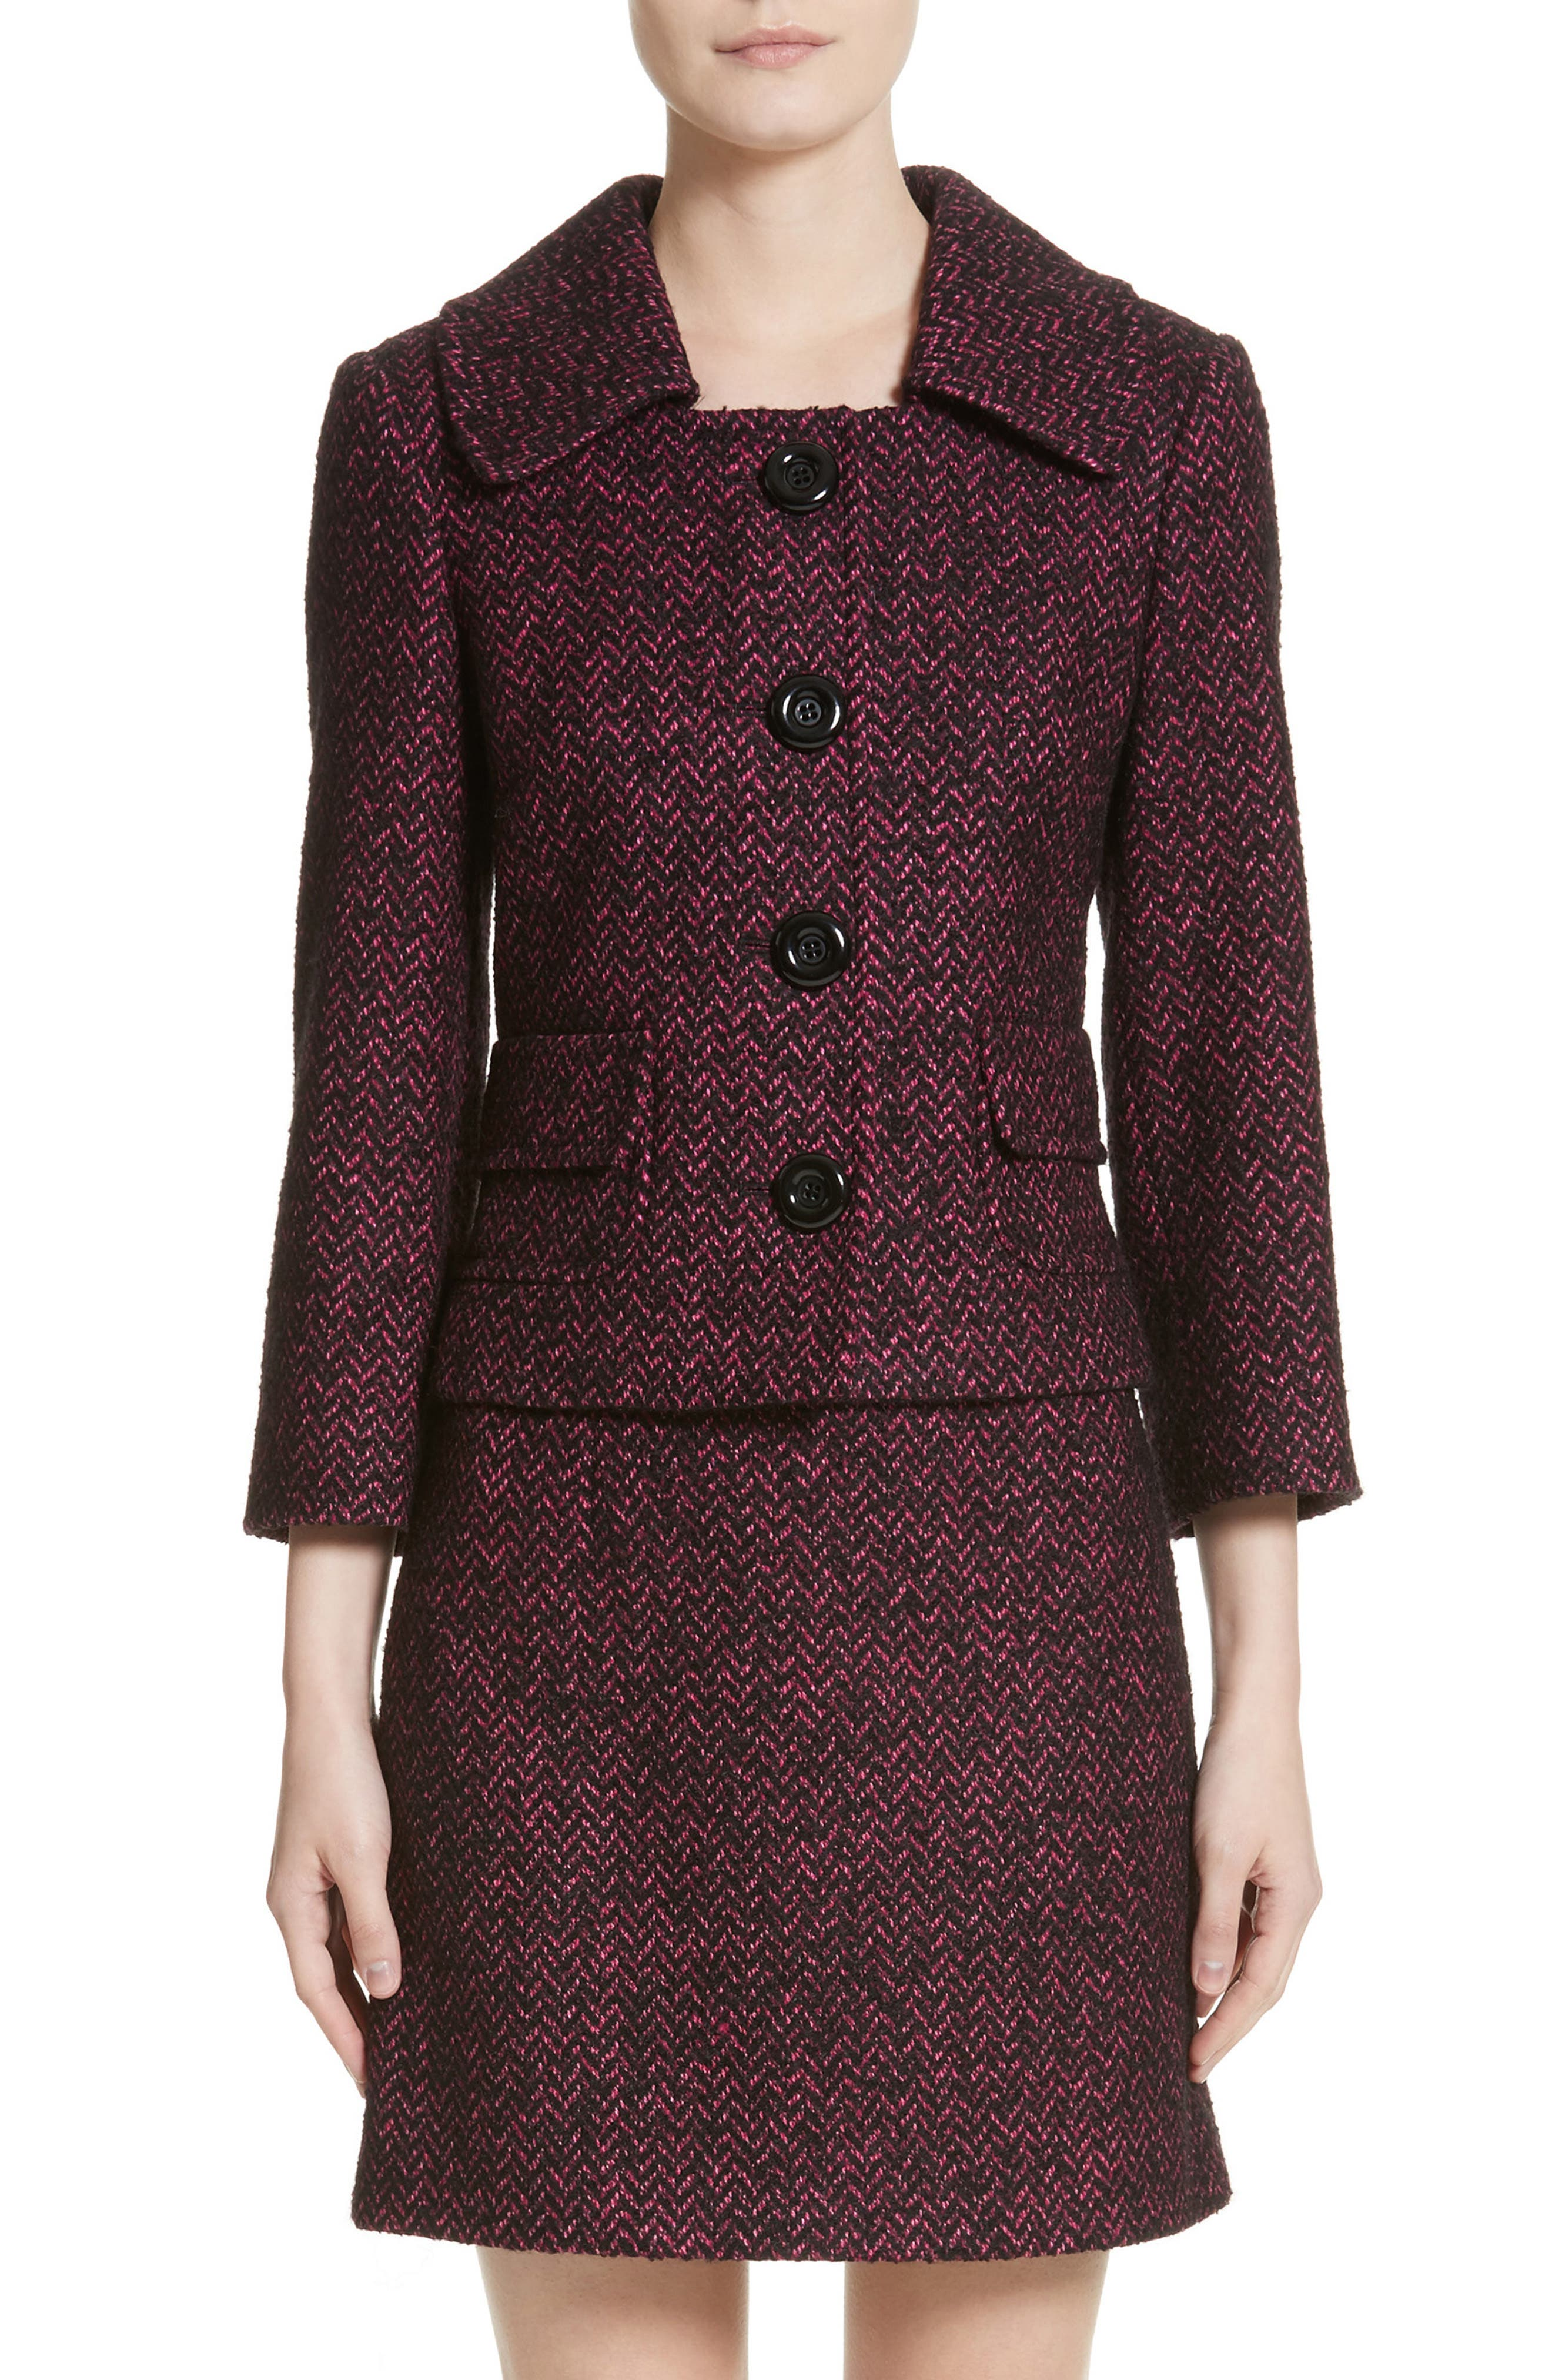 Michael Kors Herringbone Wool Blend Jacket